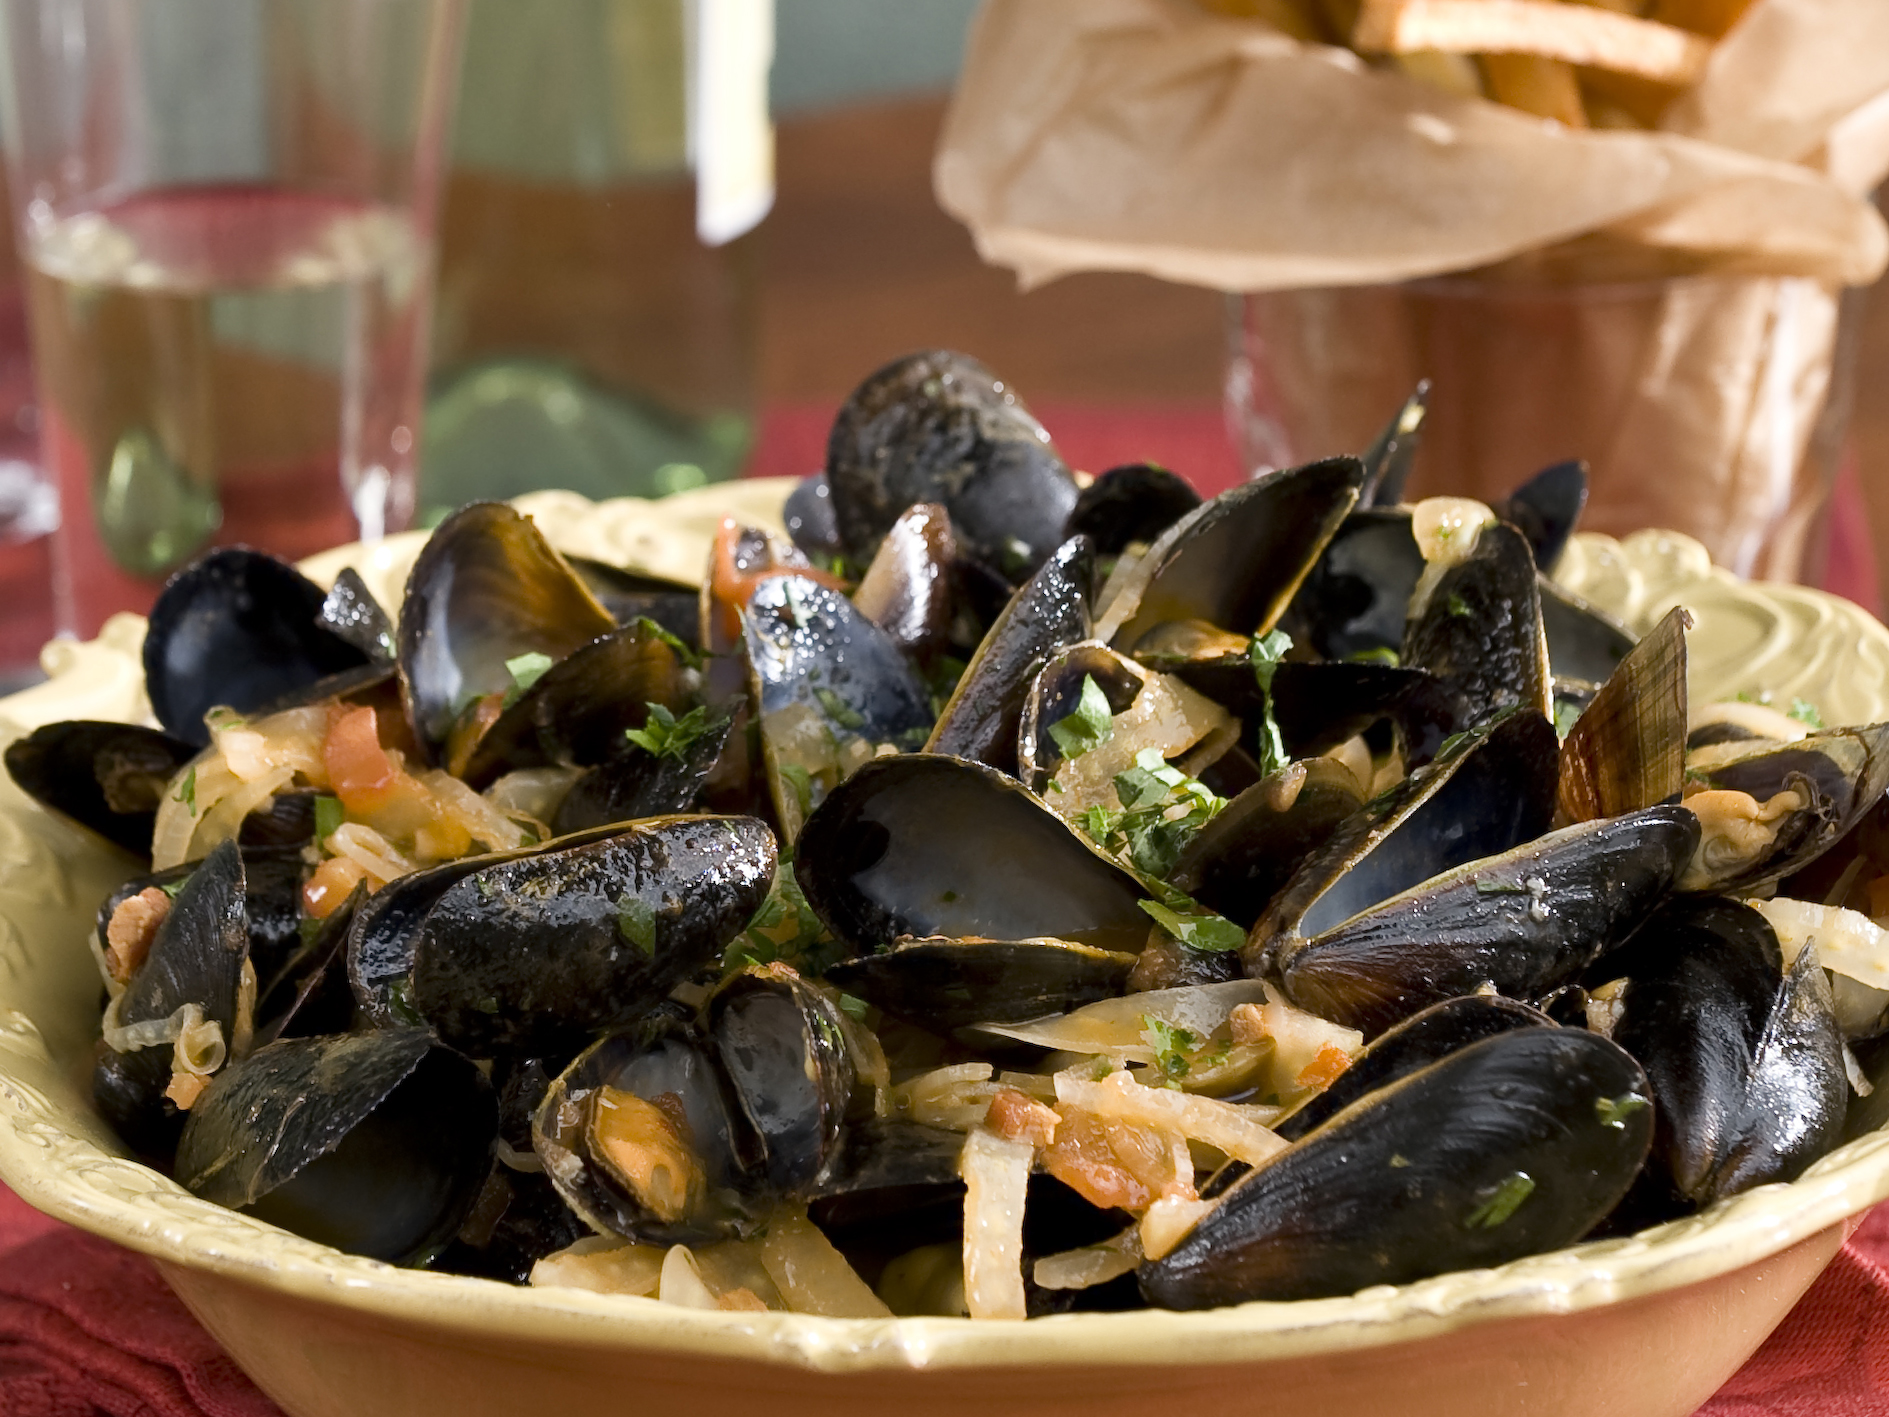 Emeril Lagasse Steamed Mussels in a Tomato and Fennel